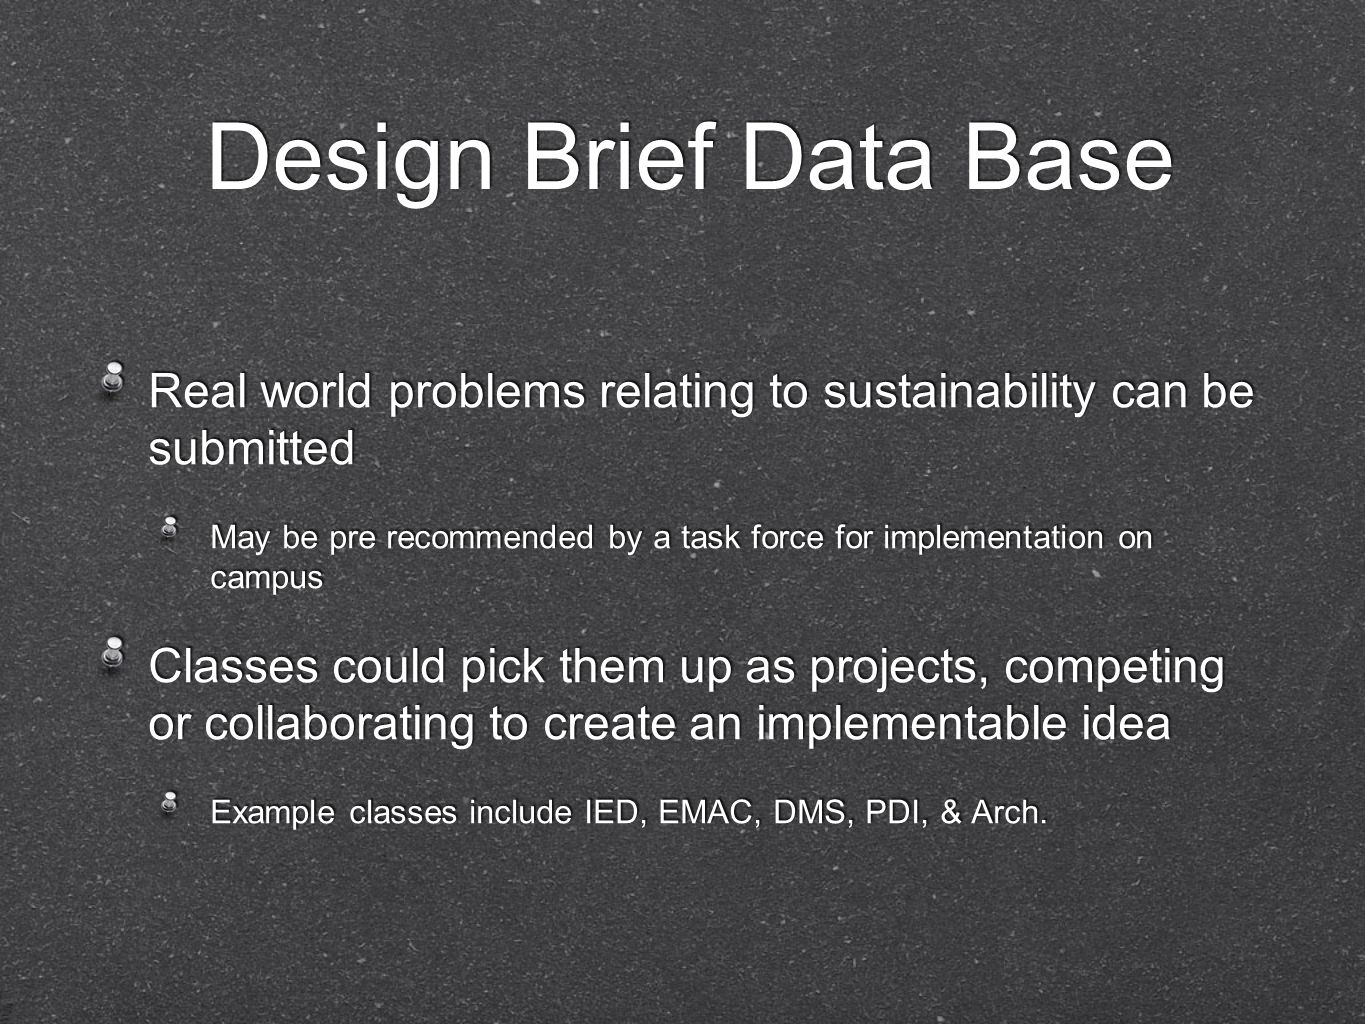 Design Brief Data Base Real world problems relating to sustainability can be submitted May be pre recommended by a task force for implementation on campus Classes could pick them up as projects, competing or collaborating to create an implementable idea Example classes include IED, EMAC, DMS, PDI, & Arch.